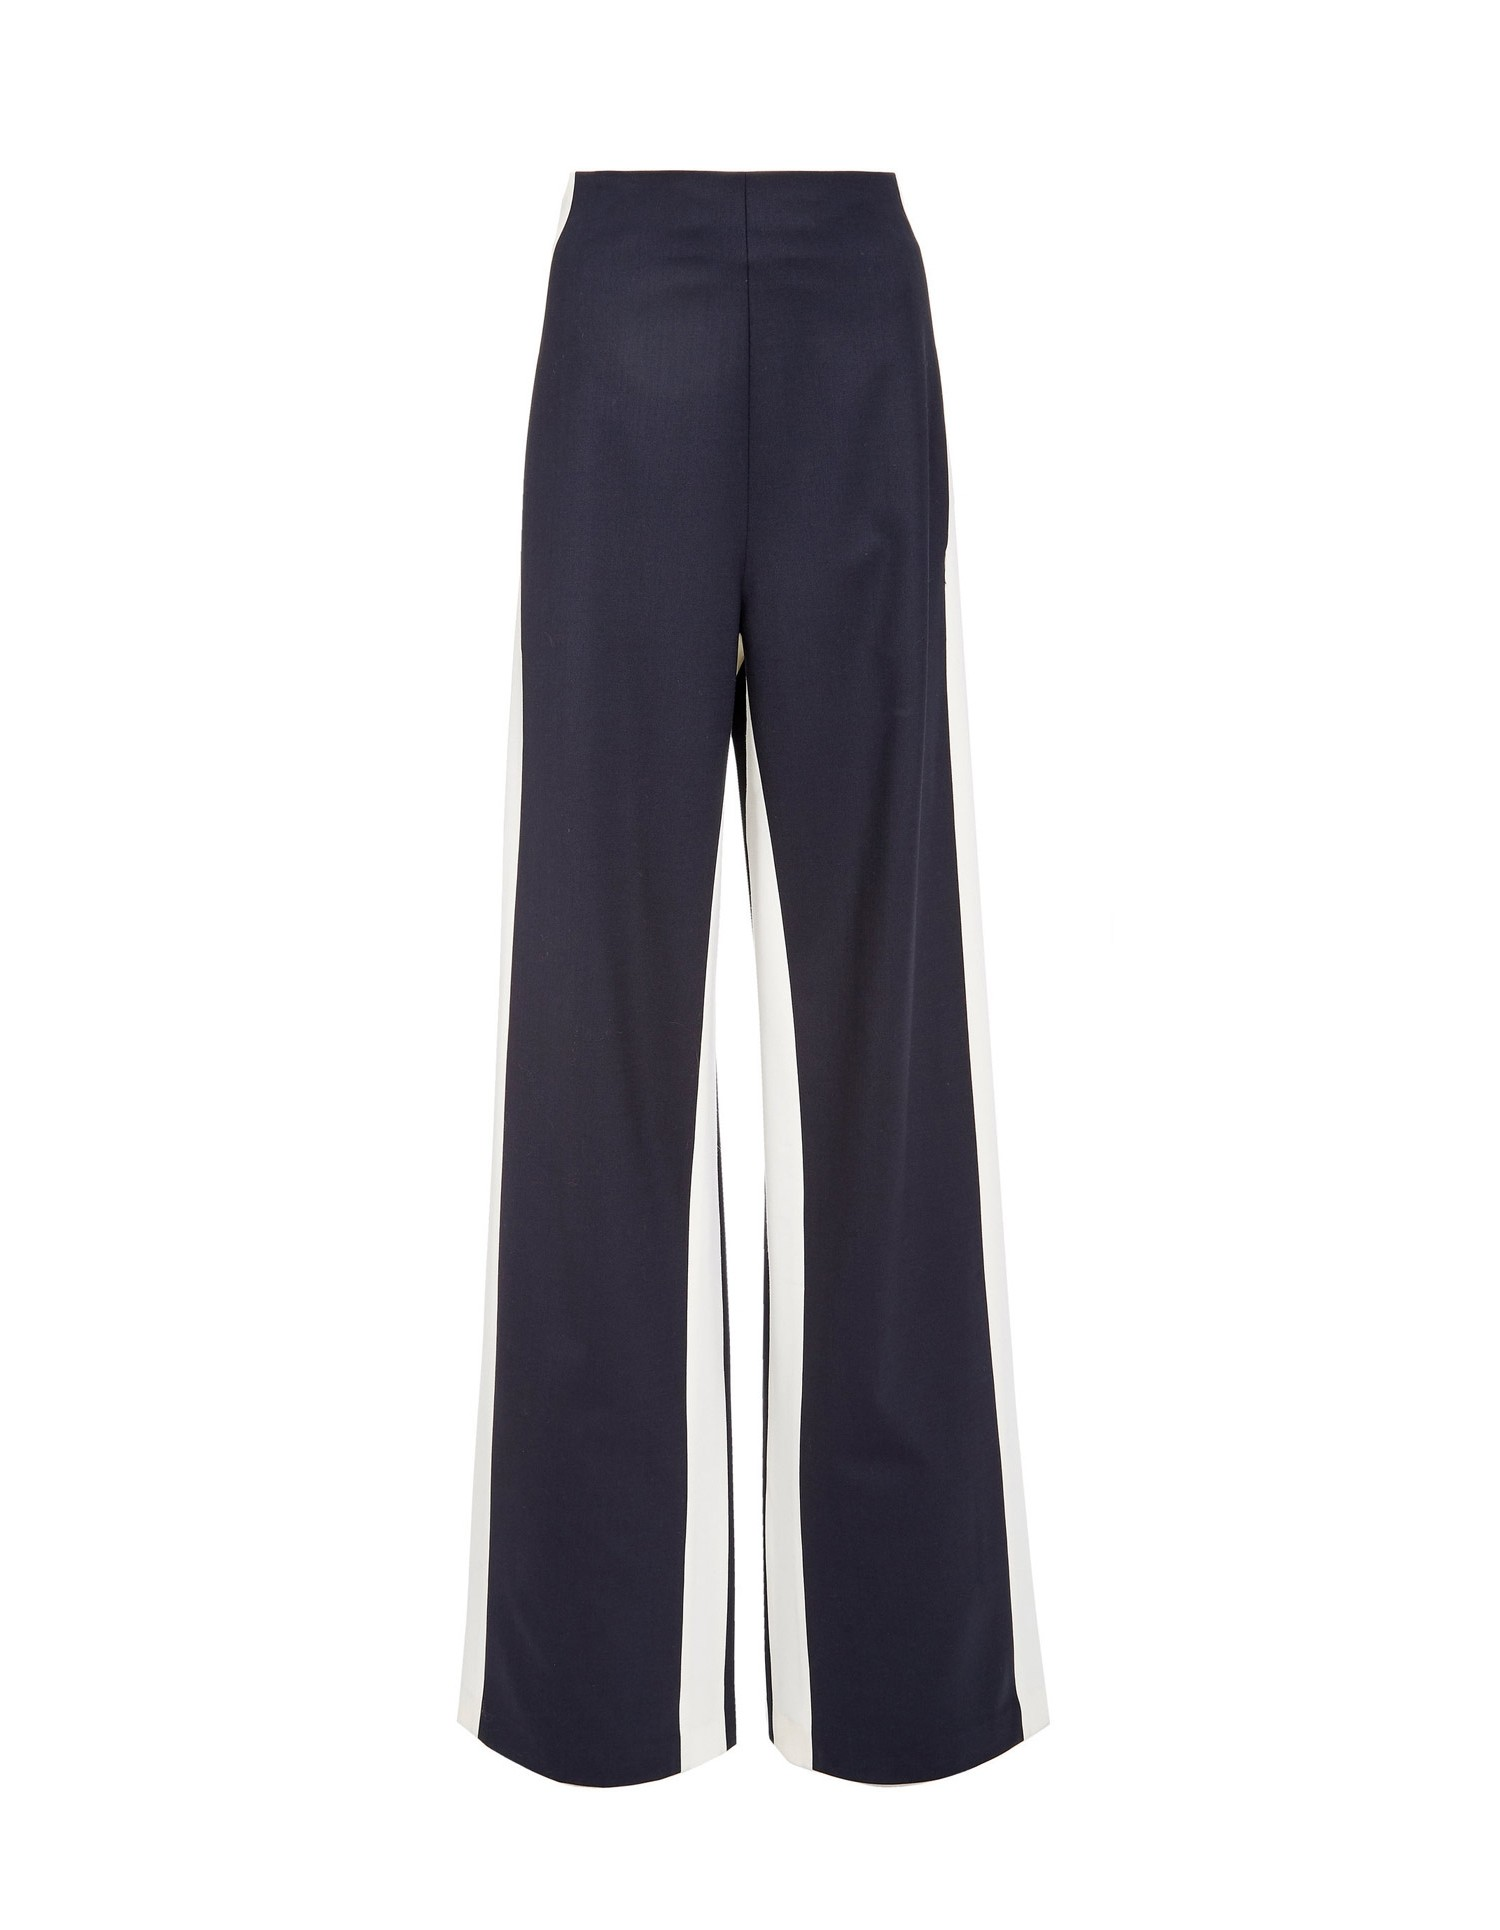 MONSE Double Stripe Gabardine Wool Pant on Model Front View